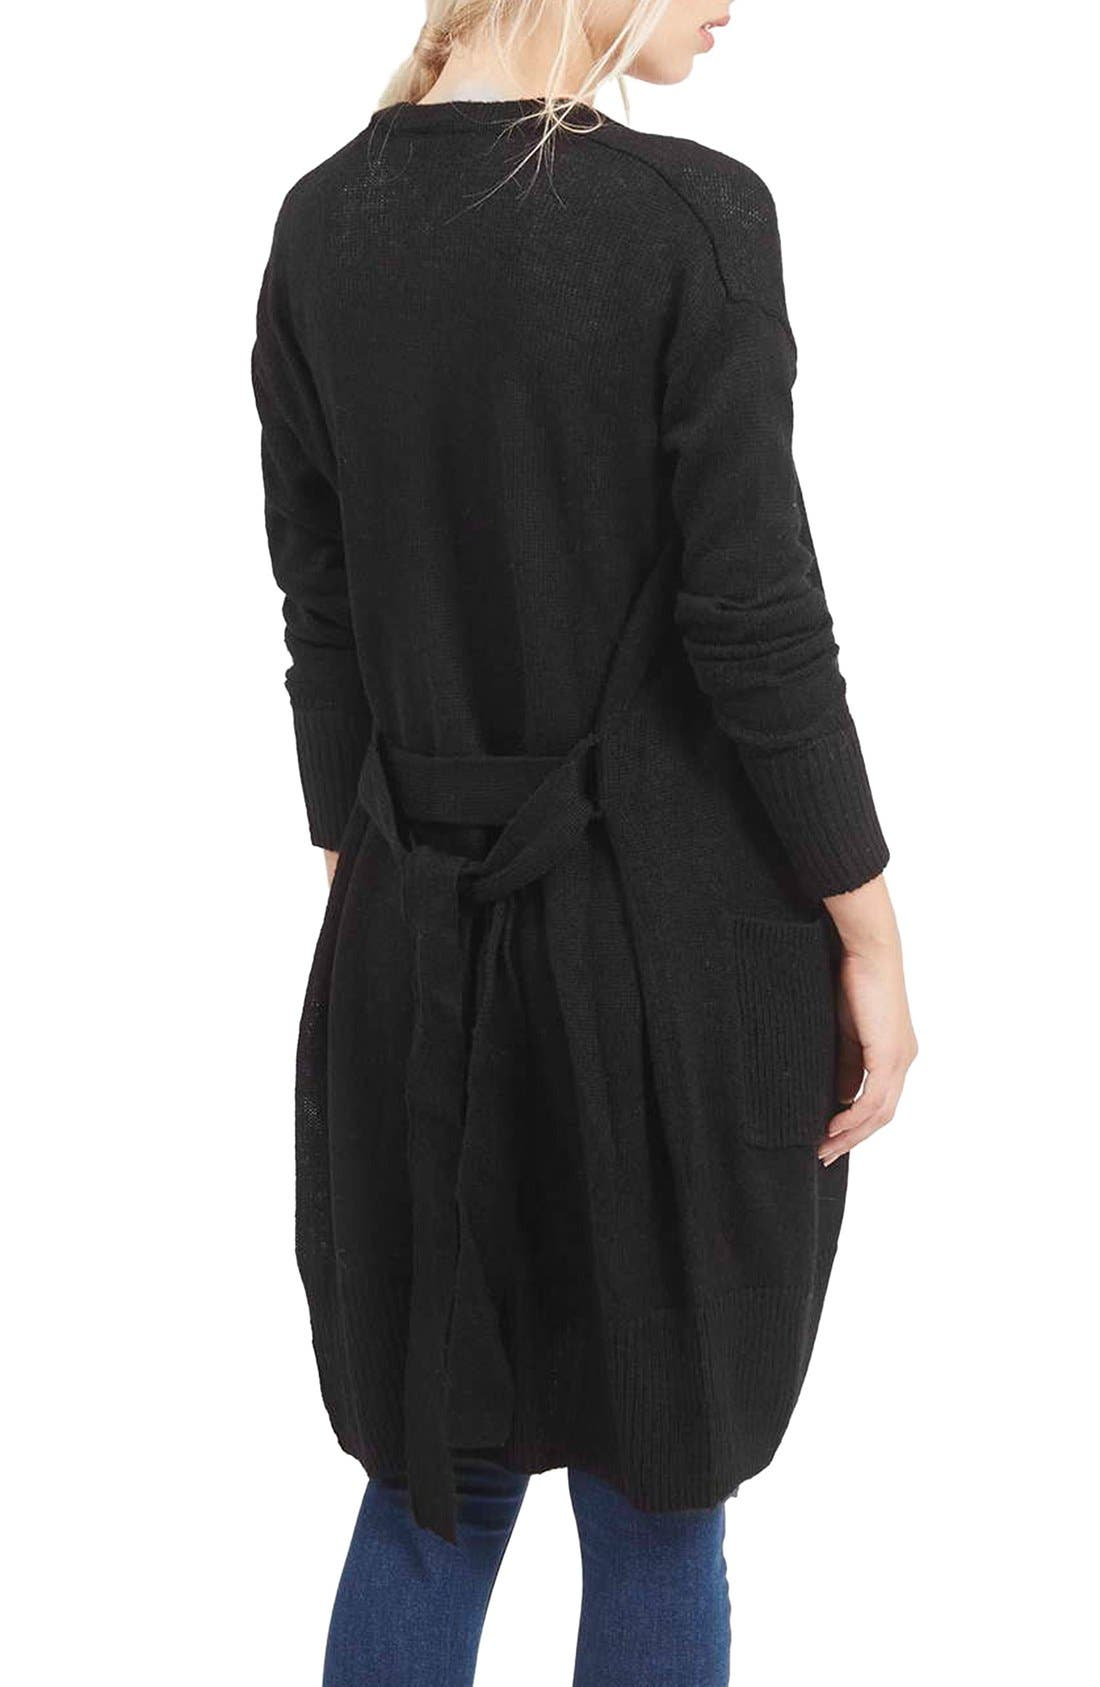 'Lulu' Belted Longline Cardigan,                             Alternate thumbnail 3, color,                             001